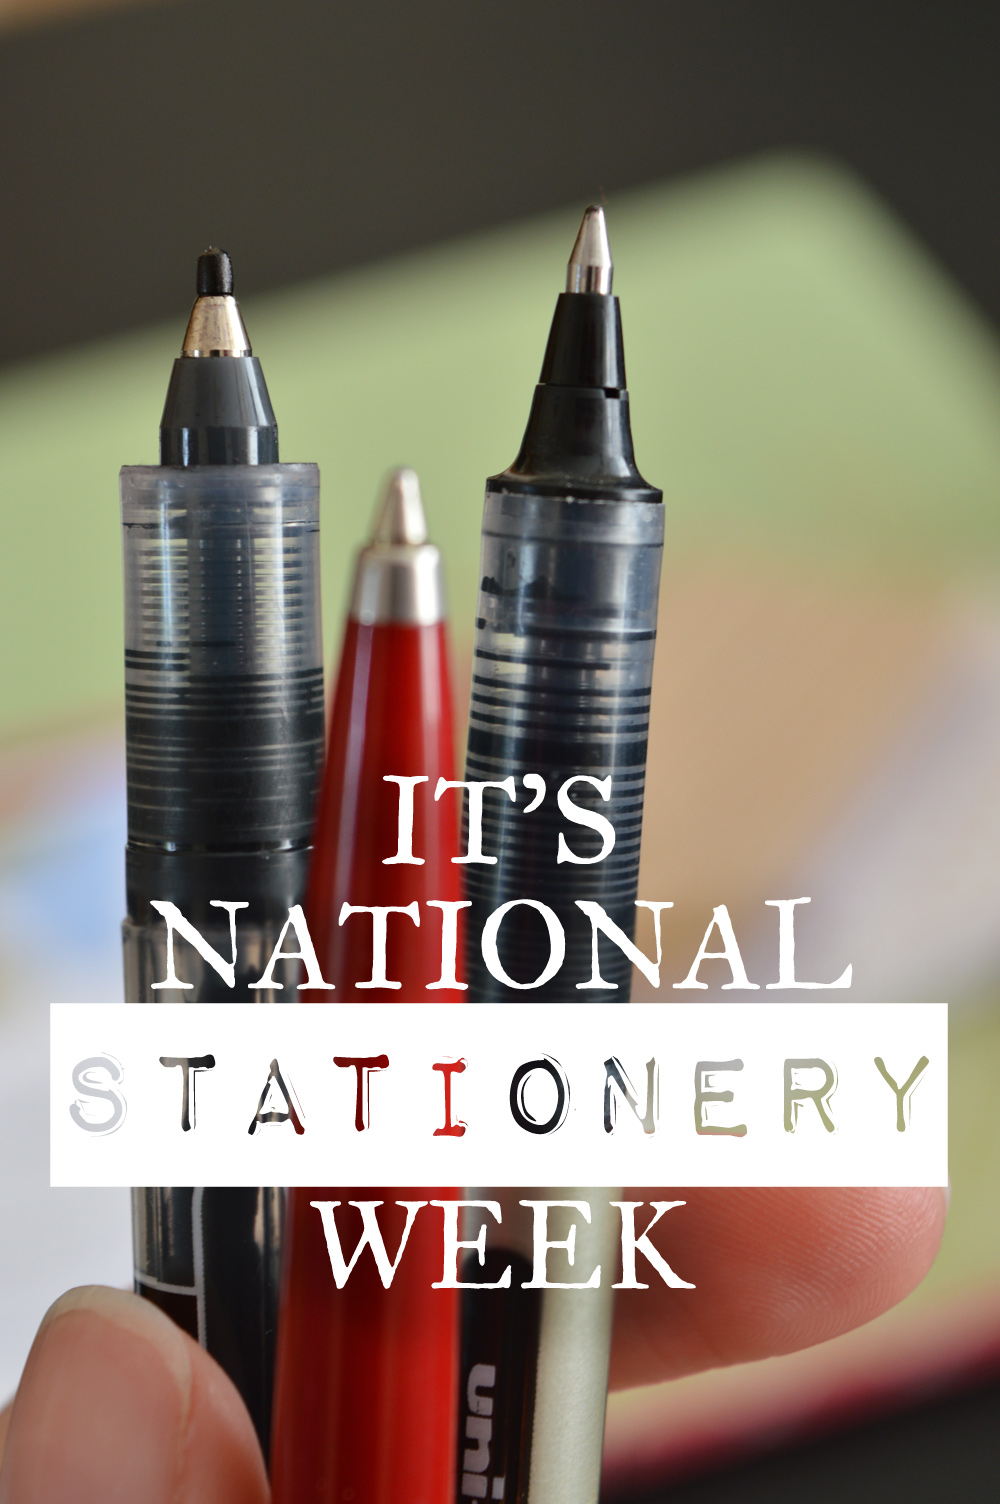 Celebrate National Stationery Week #stationeryaddict